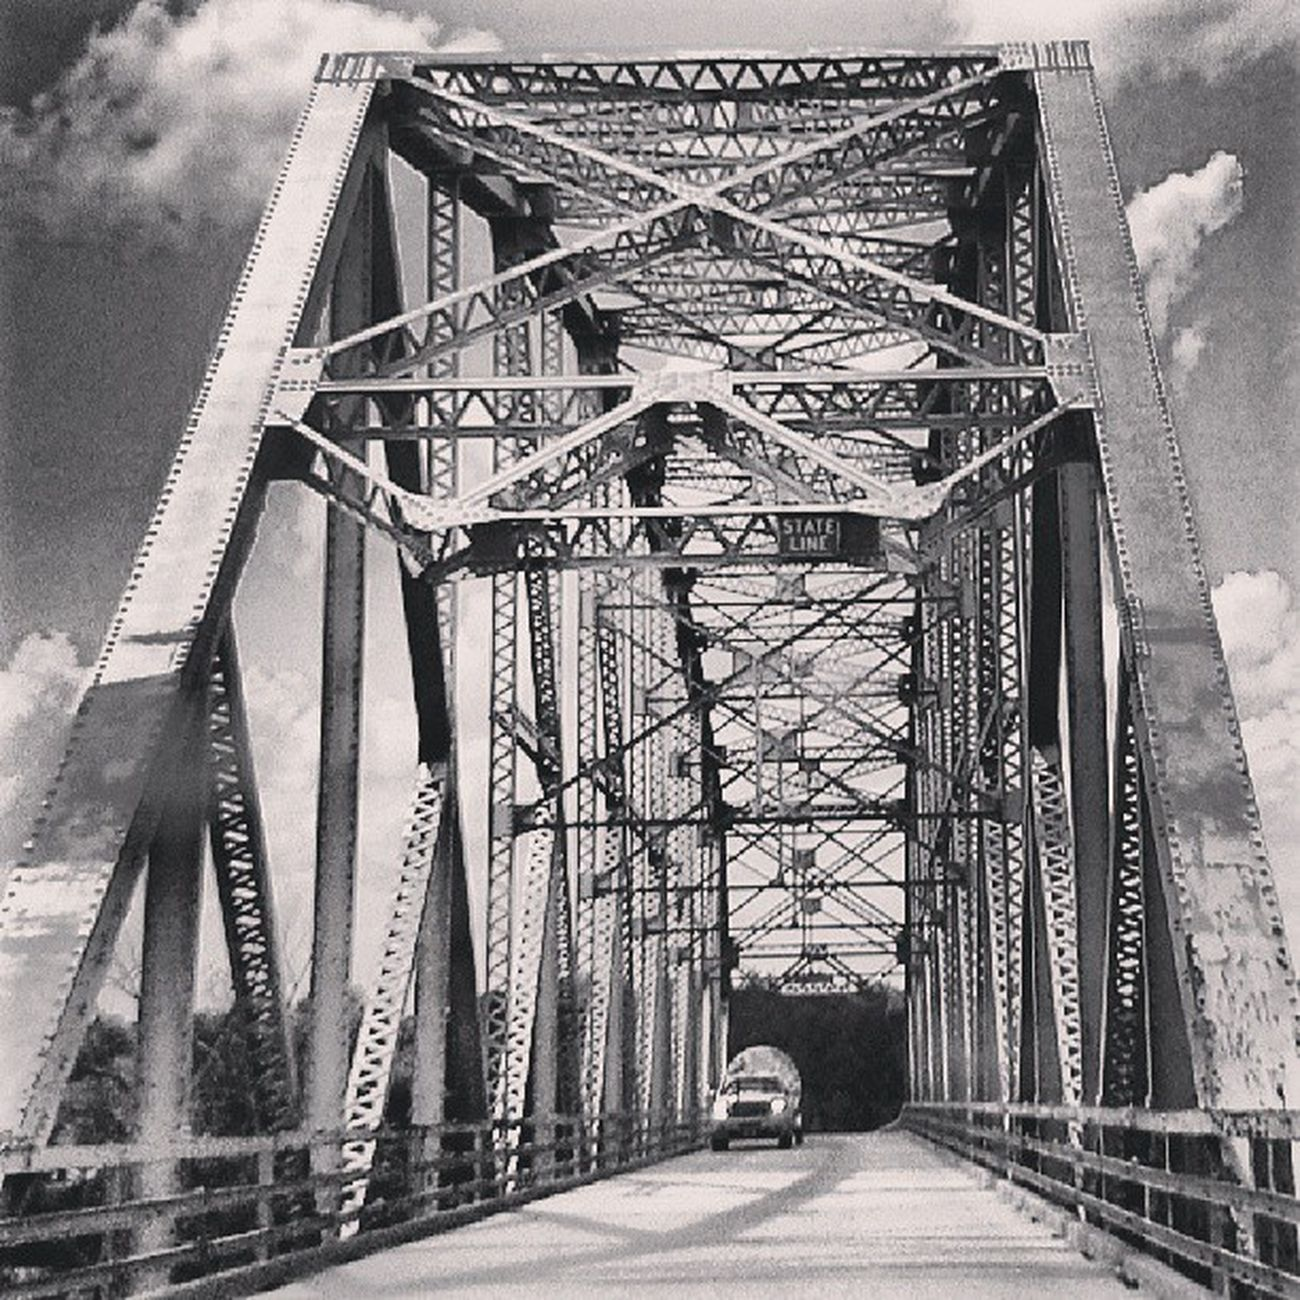 Structure Bridge Photooftheday Bnw Shotoftheday Form Missouri Nebraska Formation Bnwbutnot Bnw_life Bnw_life_invite Denvertography Bnwalma Pixoddinary Pixoddinary_c6 Bnw_stingray Power_group Bnwphotooftheday Power_bnw Underdogs_bw Udogbw_bridges Rulo StateLine Denvertography_trans Missouririver Heyfred_itsabridge